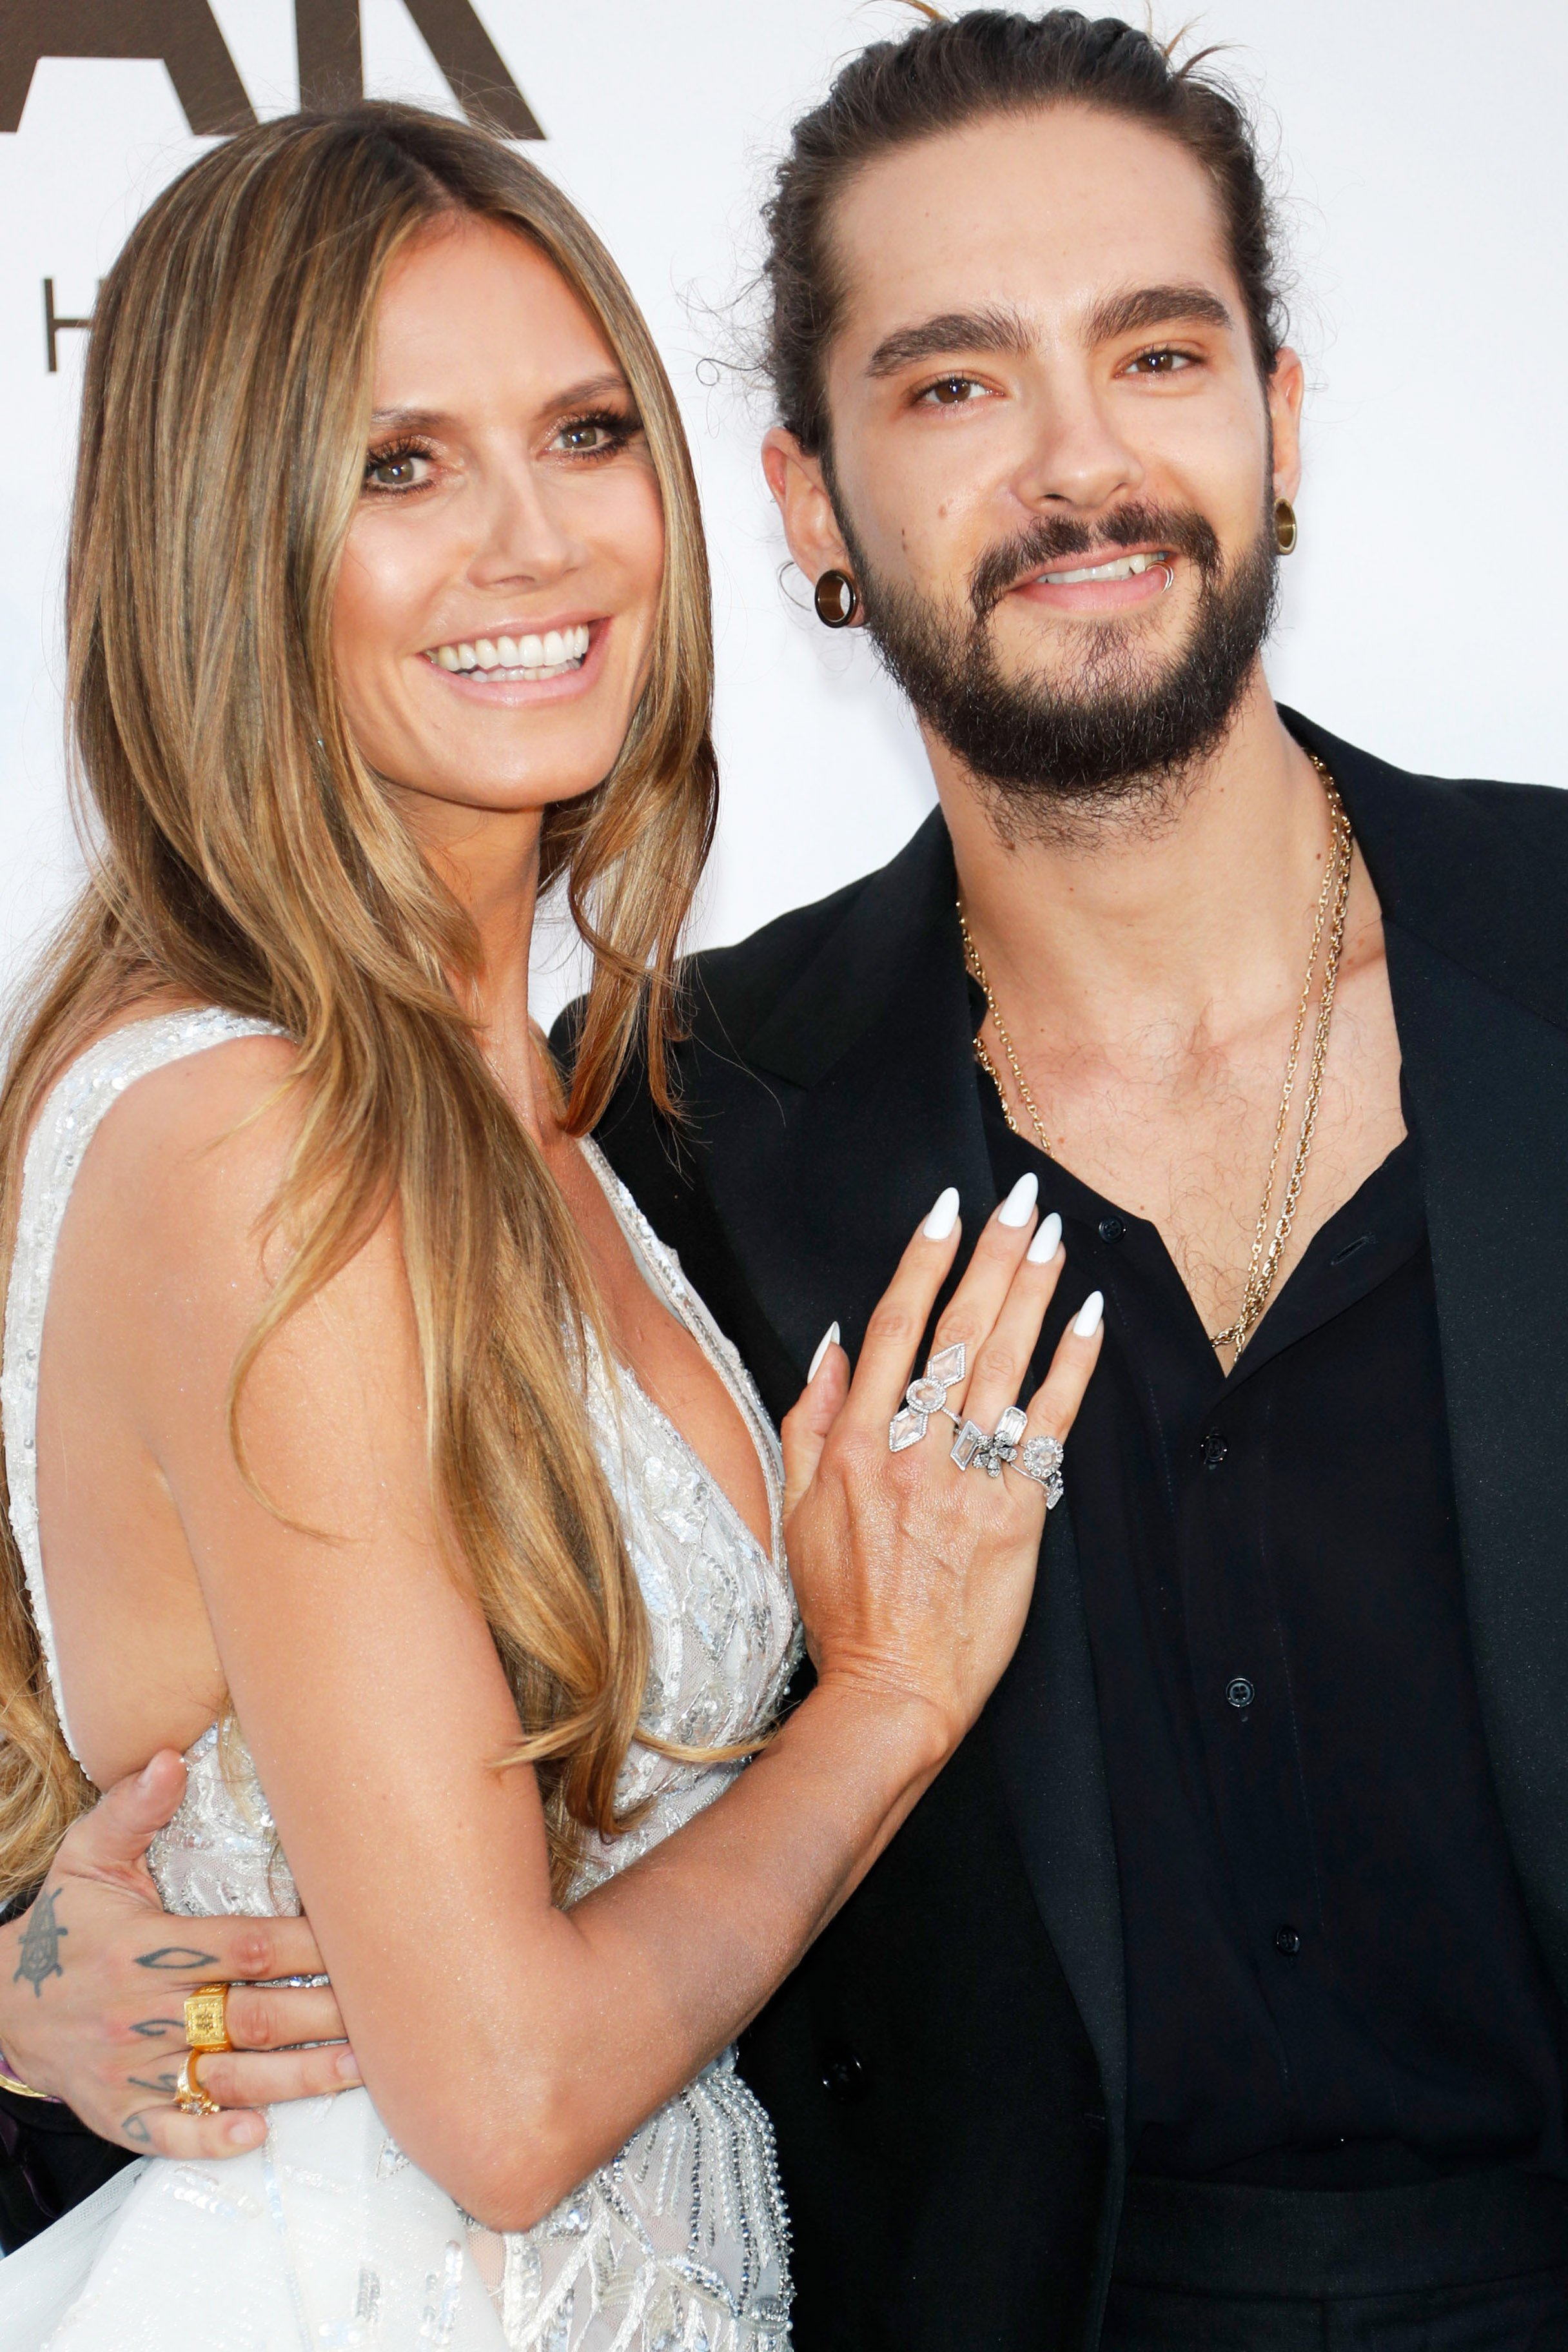 Heidi Klum (L) and Tom Kaulitz arrive at the amfAR Gala Cannes 2018 at Hotel du Cap-Eden-Roc on May 17, 2018, in Cap d'Antibes, France. | Source: Getty Images.